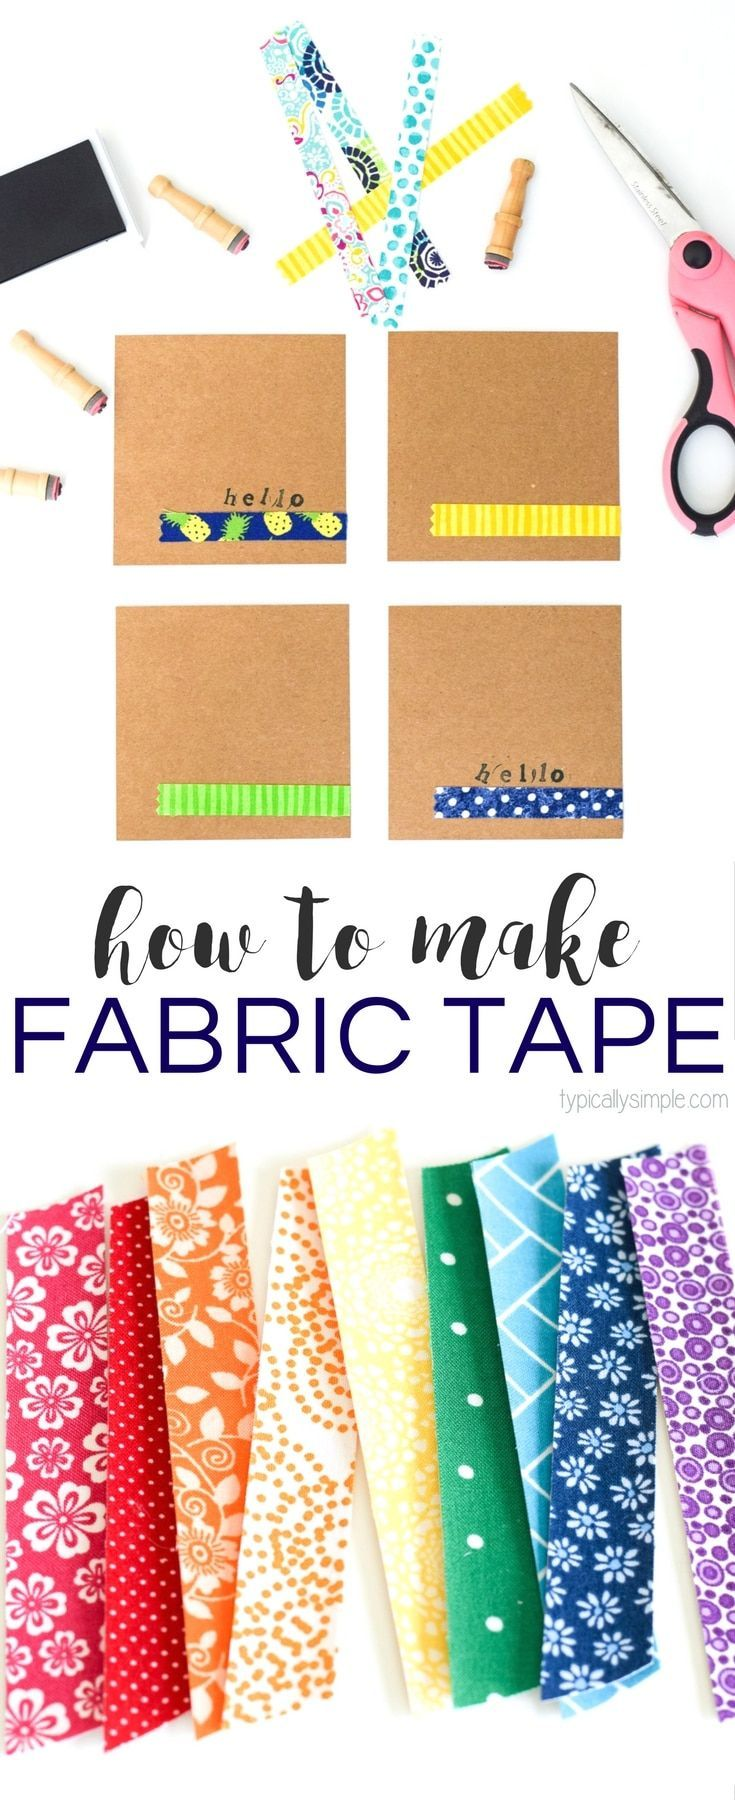 Fabric tape is a great way to add some fun colors and patterns to packages, envelopes, notecards, or even your planner! This tutorial gives you a list of supplies and directions for DIY fabric tape - a great way to use up some of those fabric scraps!